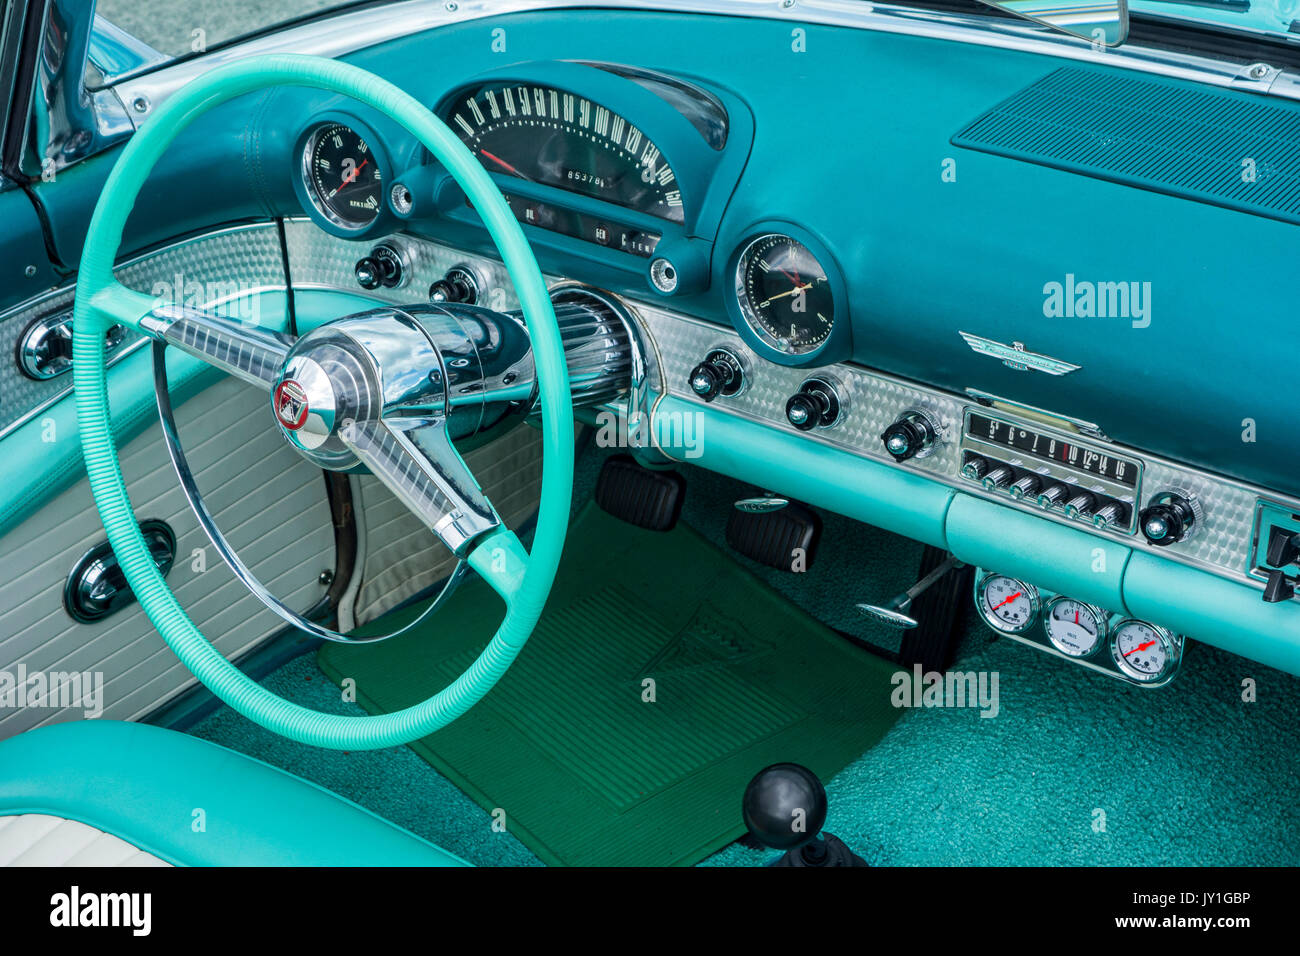 Ford Thunderbird American Car Stock Photos 1964 Dash Pad Vintage 1955 Interior Showing Steering Wheel And Dashboard In Teal Aqua Colors